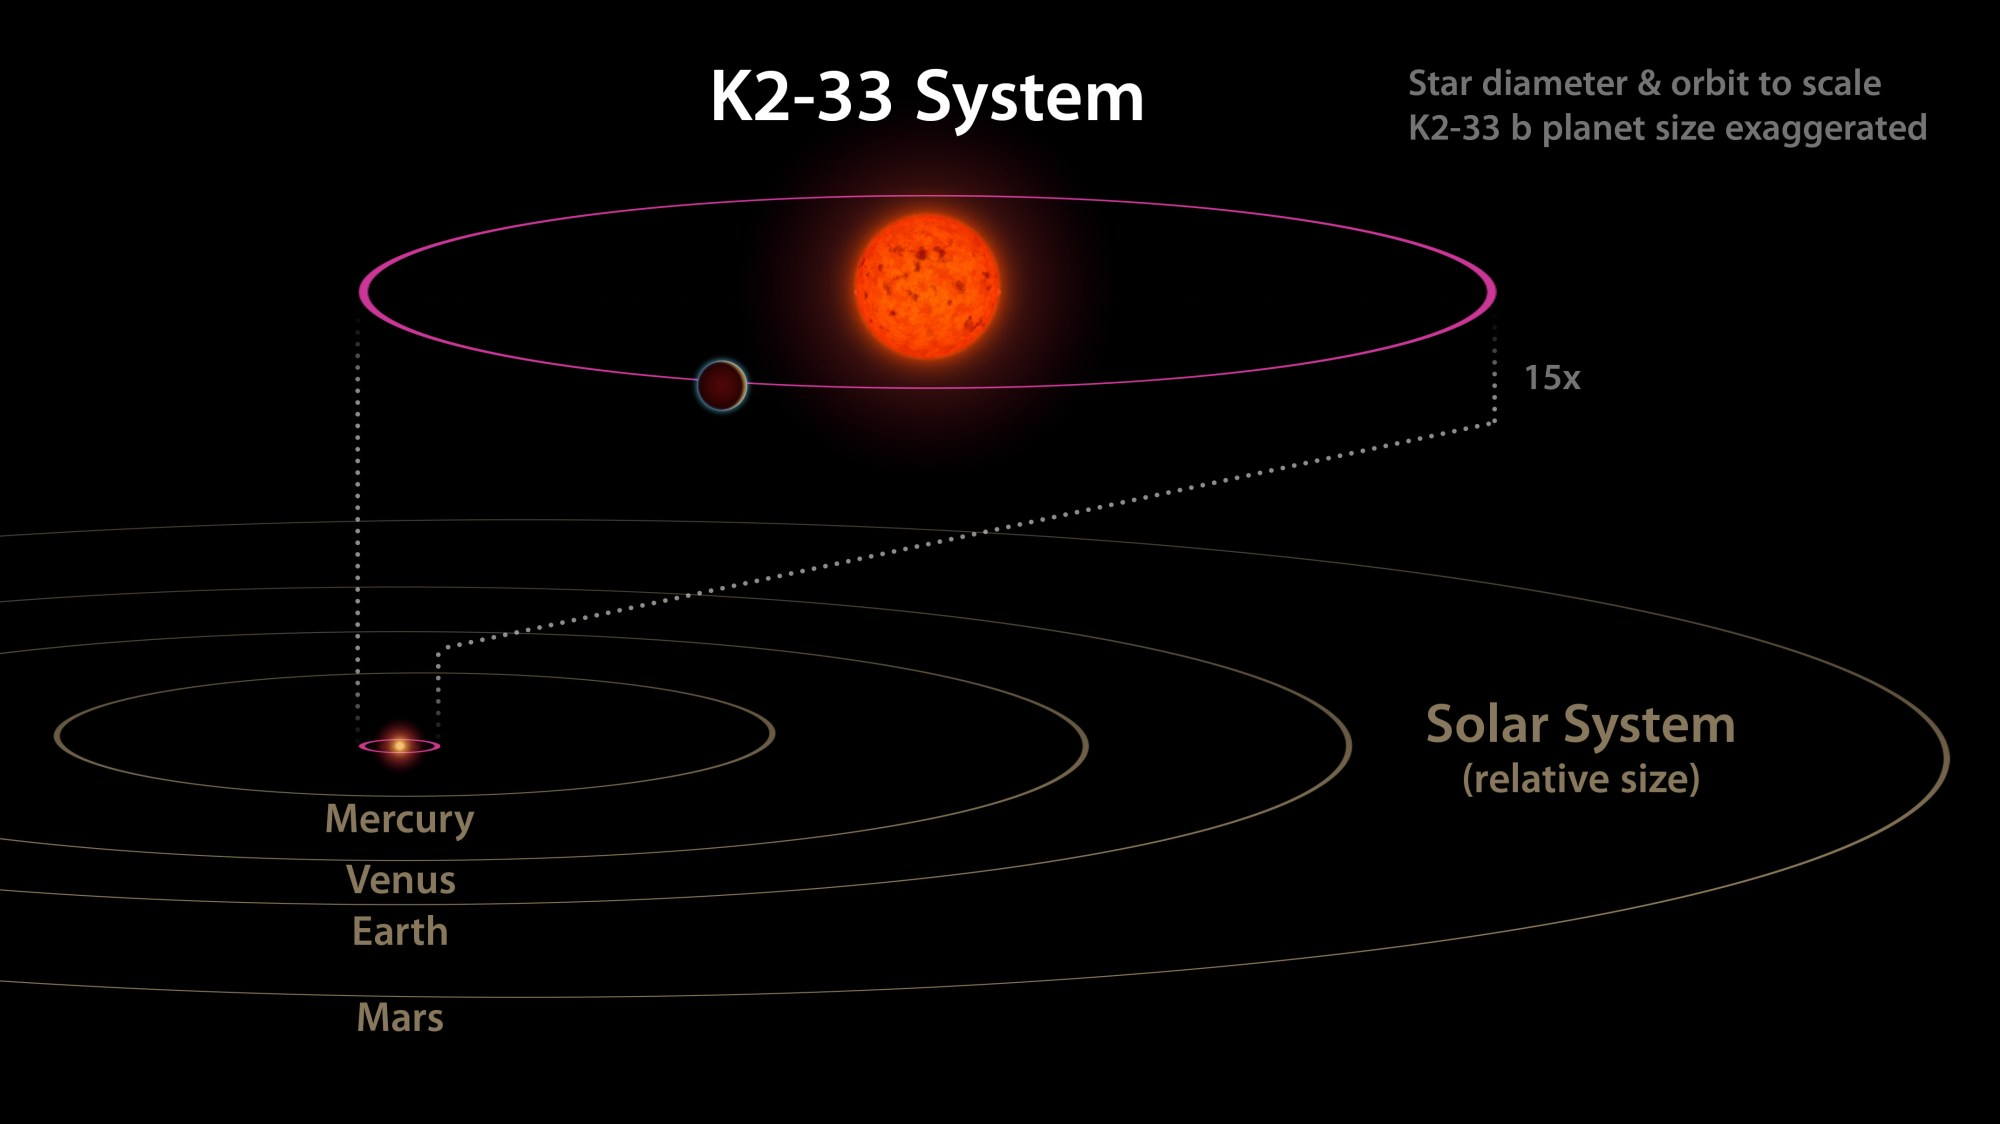 hight resolution of this image shows the k2 33 system and its planet k2 33b